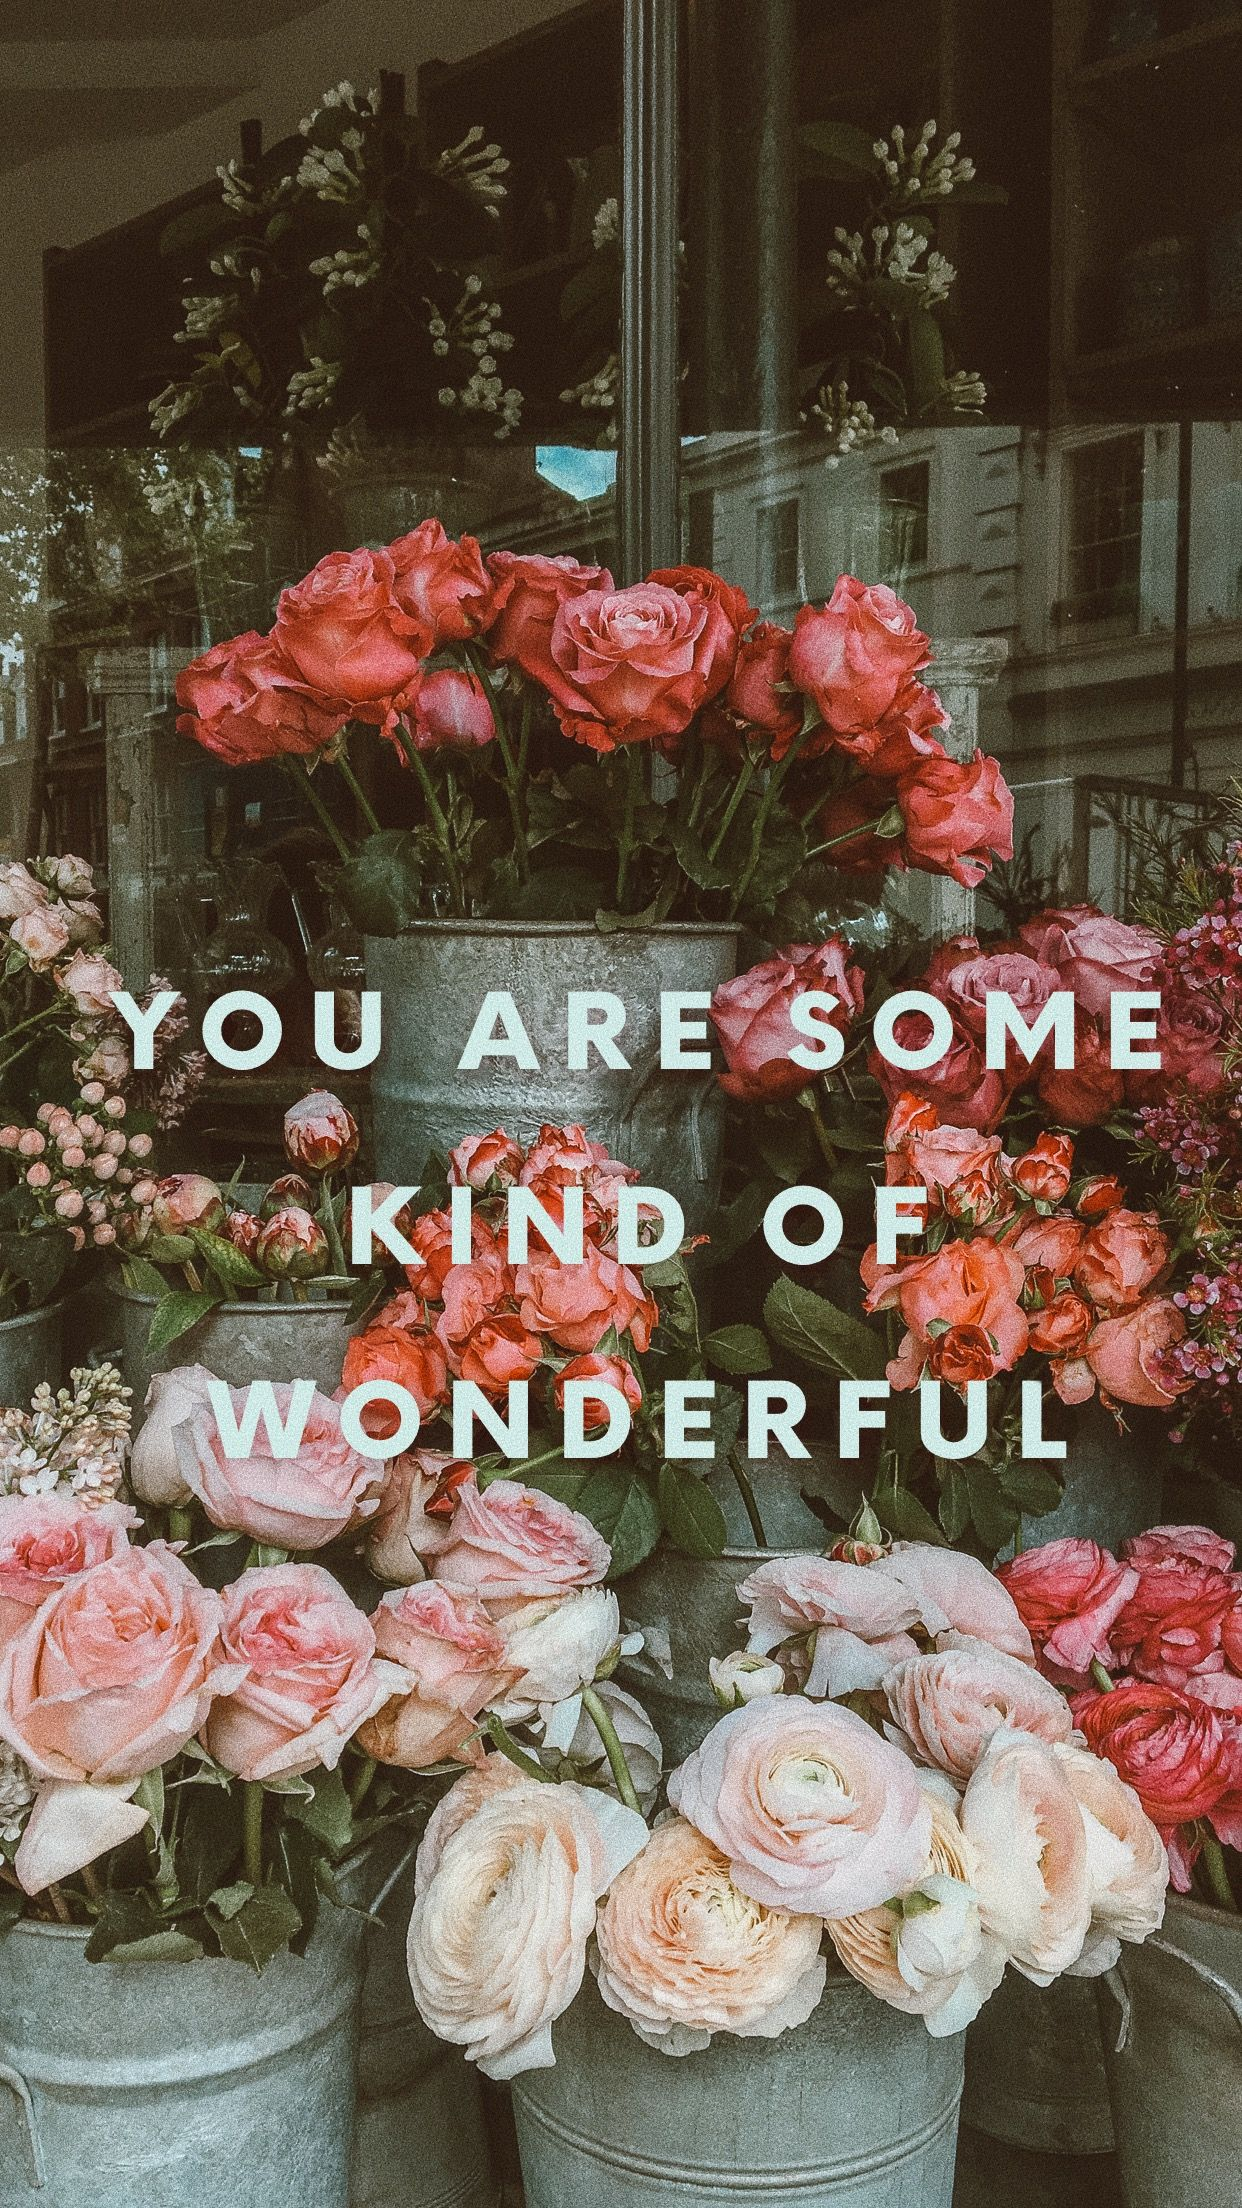 Free Iphone Wallpaper With An Inspirational Quote For Women You Are Some Kind Of Wonderful Floral Wallpaper Iphone Free Iphone Wallpaper Shop Wallpaper